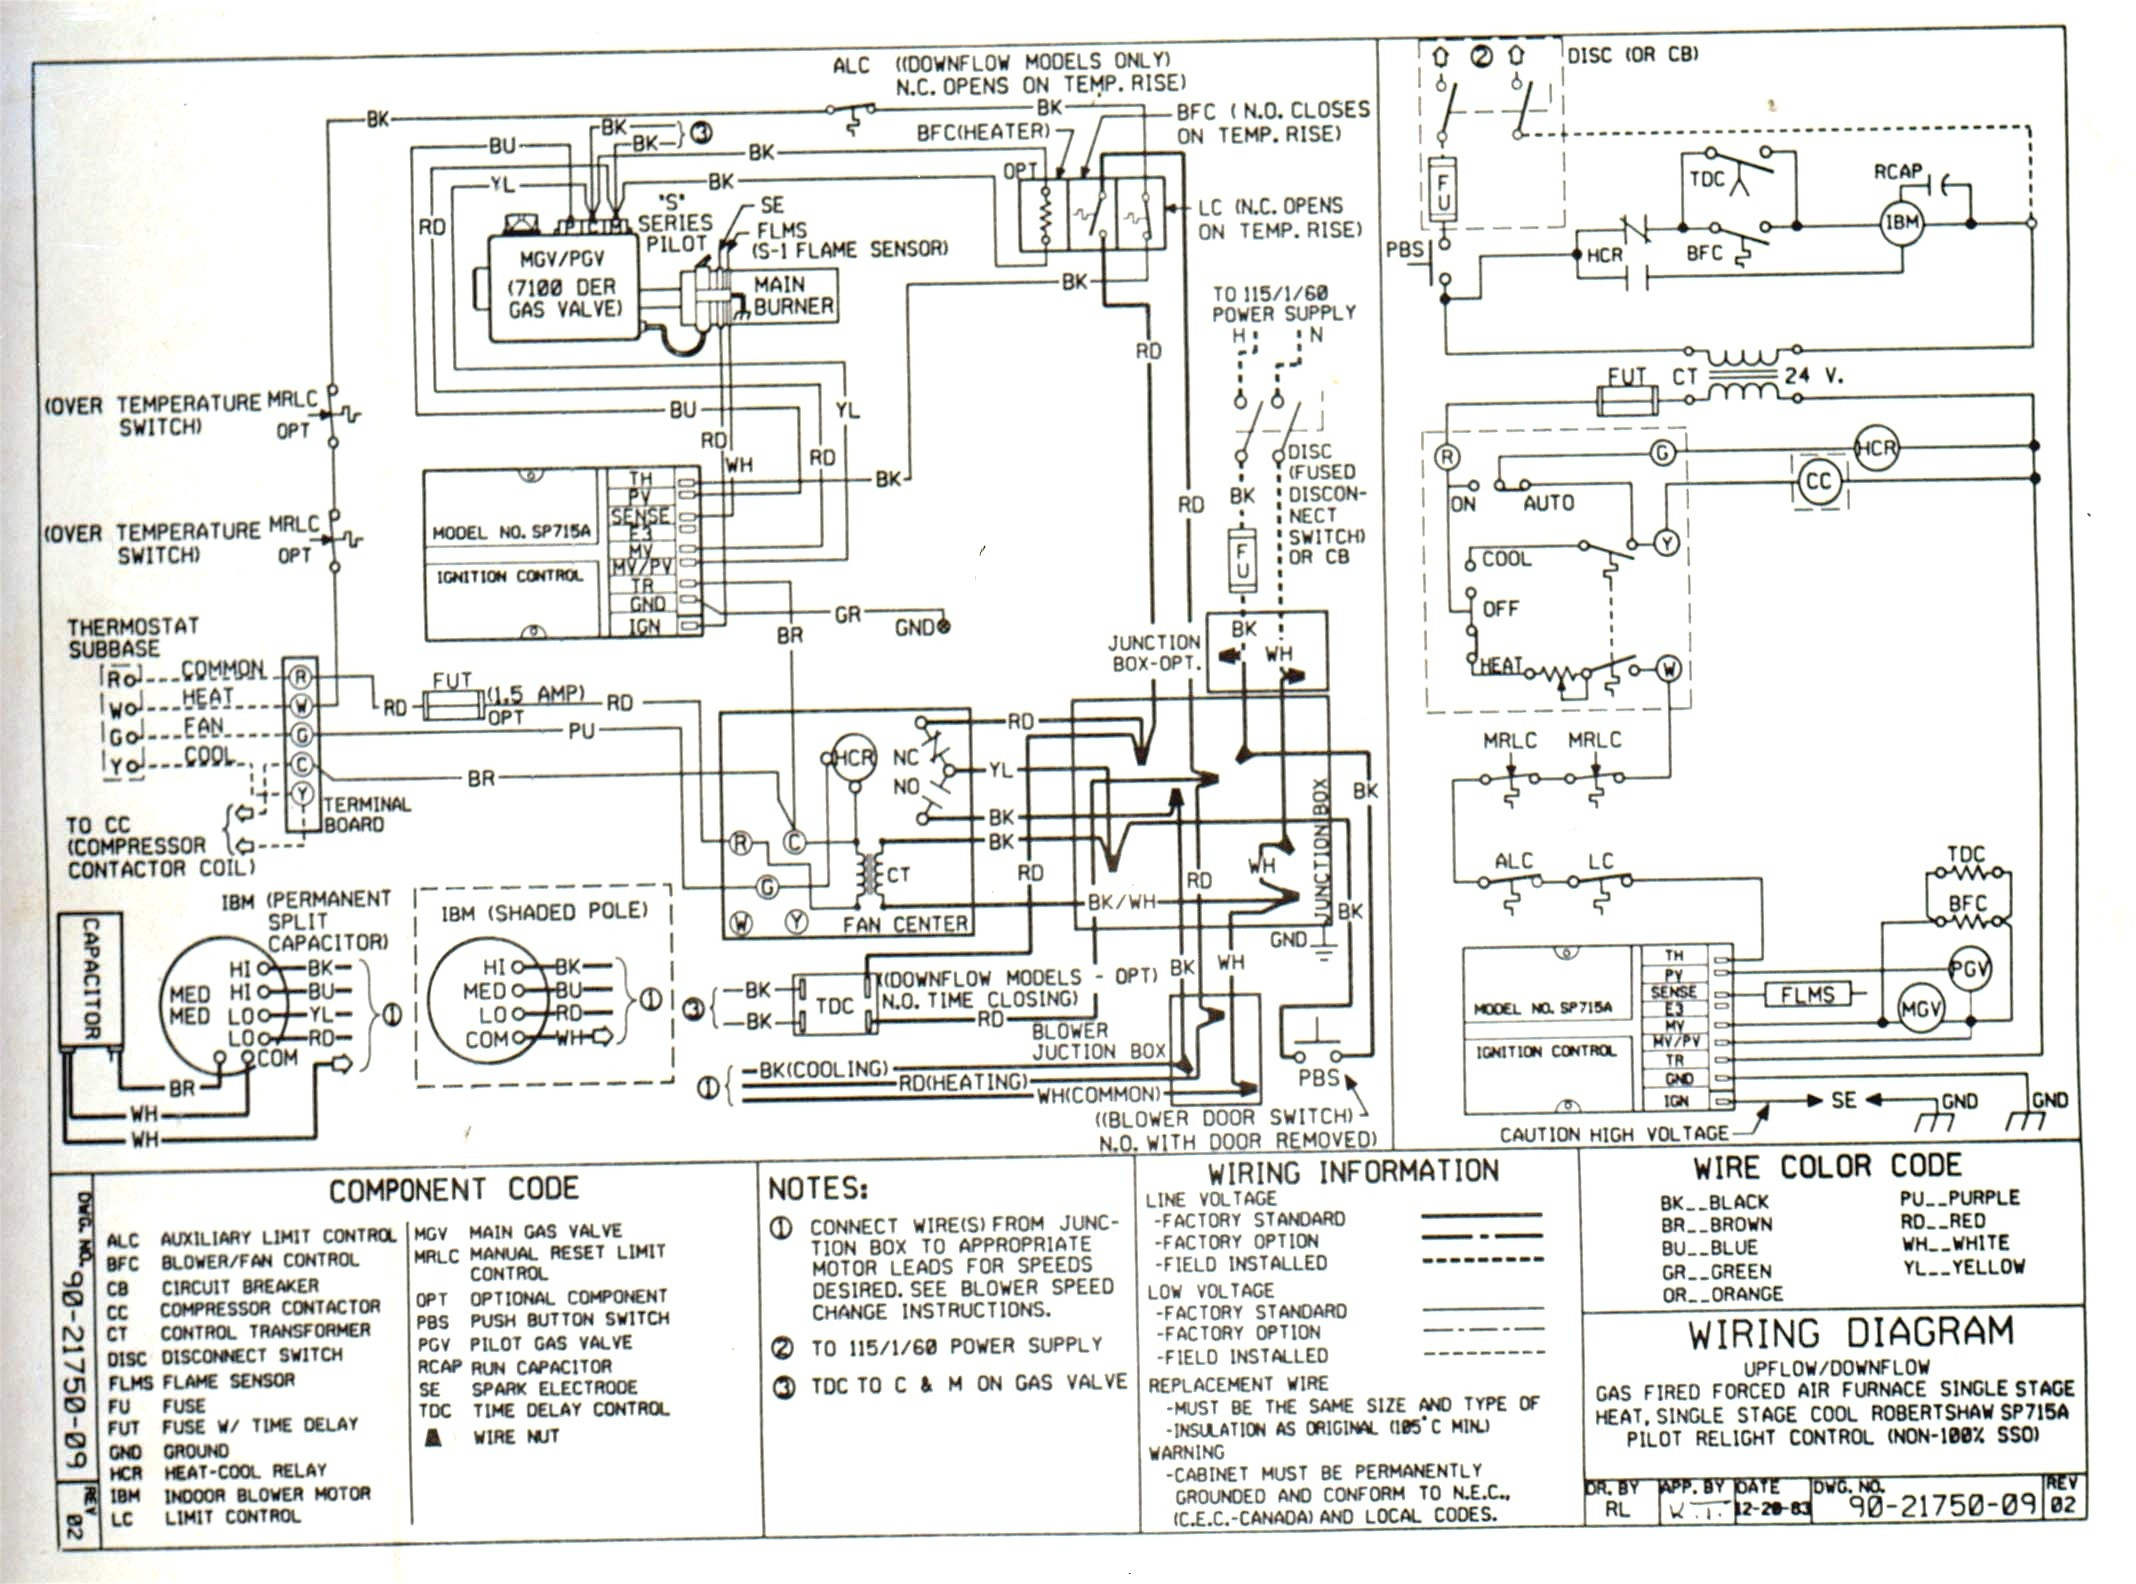 Wiring Diagram For York Heat Pump To Nest Thermostat